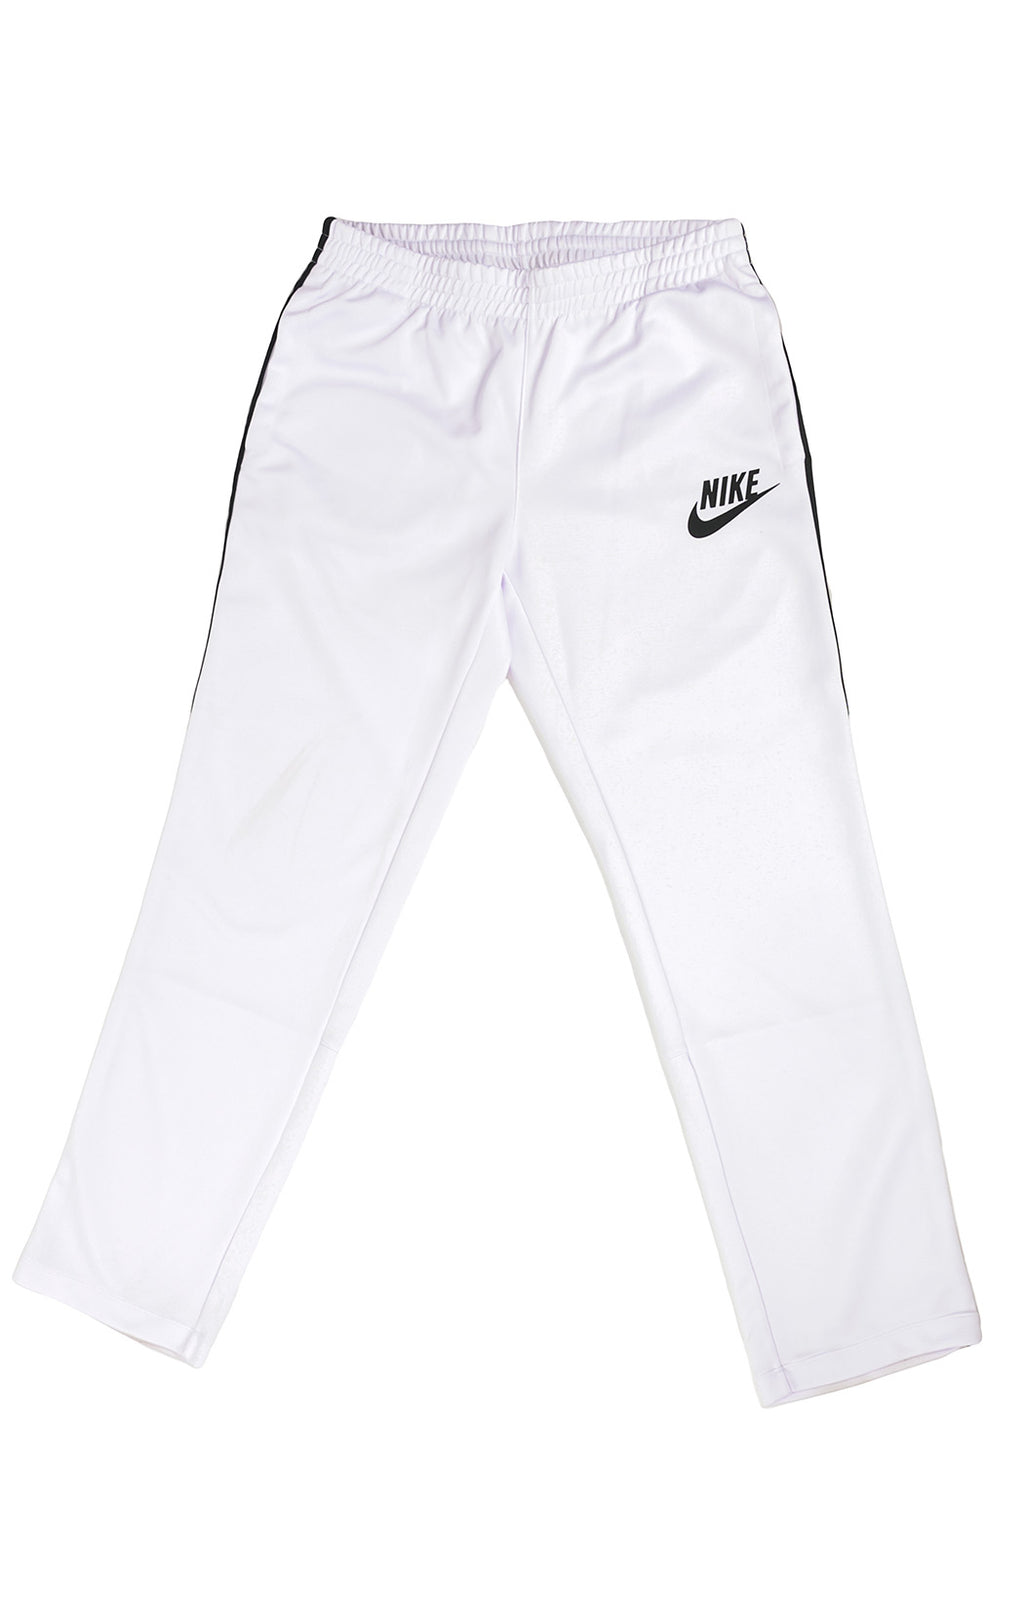 Front view of NIKE Track pant  Size: Medium